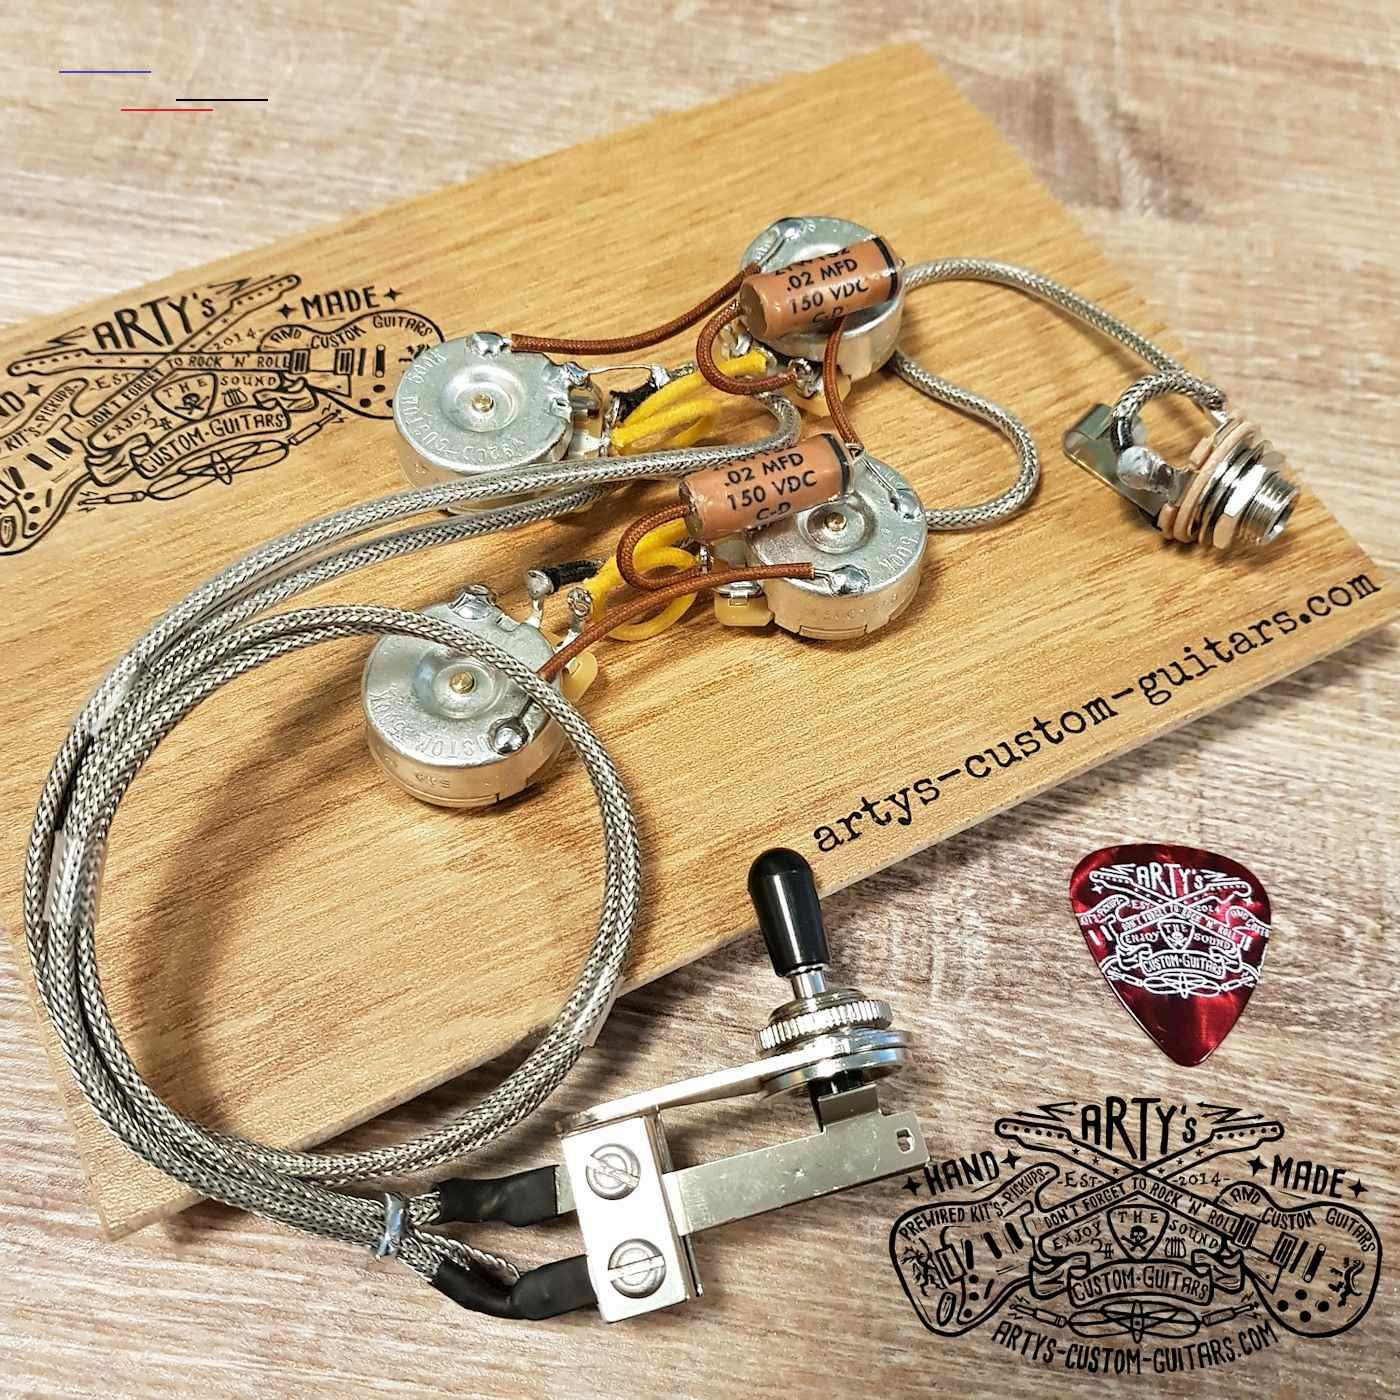 Wiring Harness Telecaster Deluxe Customguitars This Prewired Kit Fits Perfectly For The Tele Deluxe Models The Standard Wiring Is The Same As The 1972 Mod En 2020